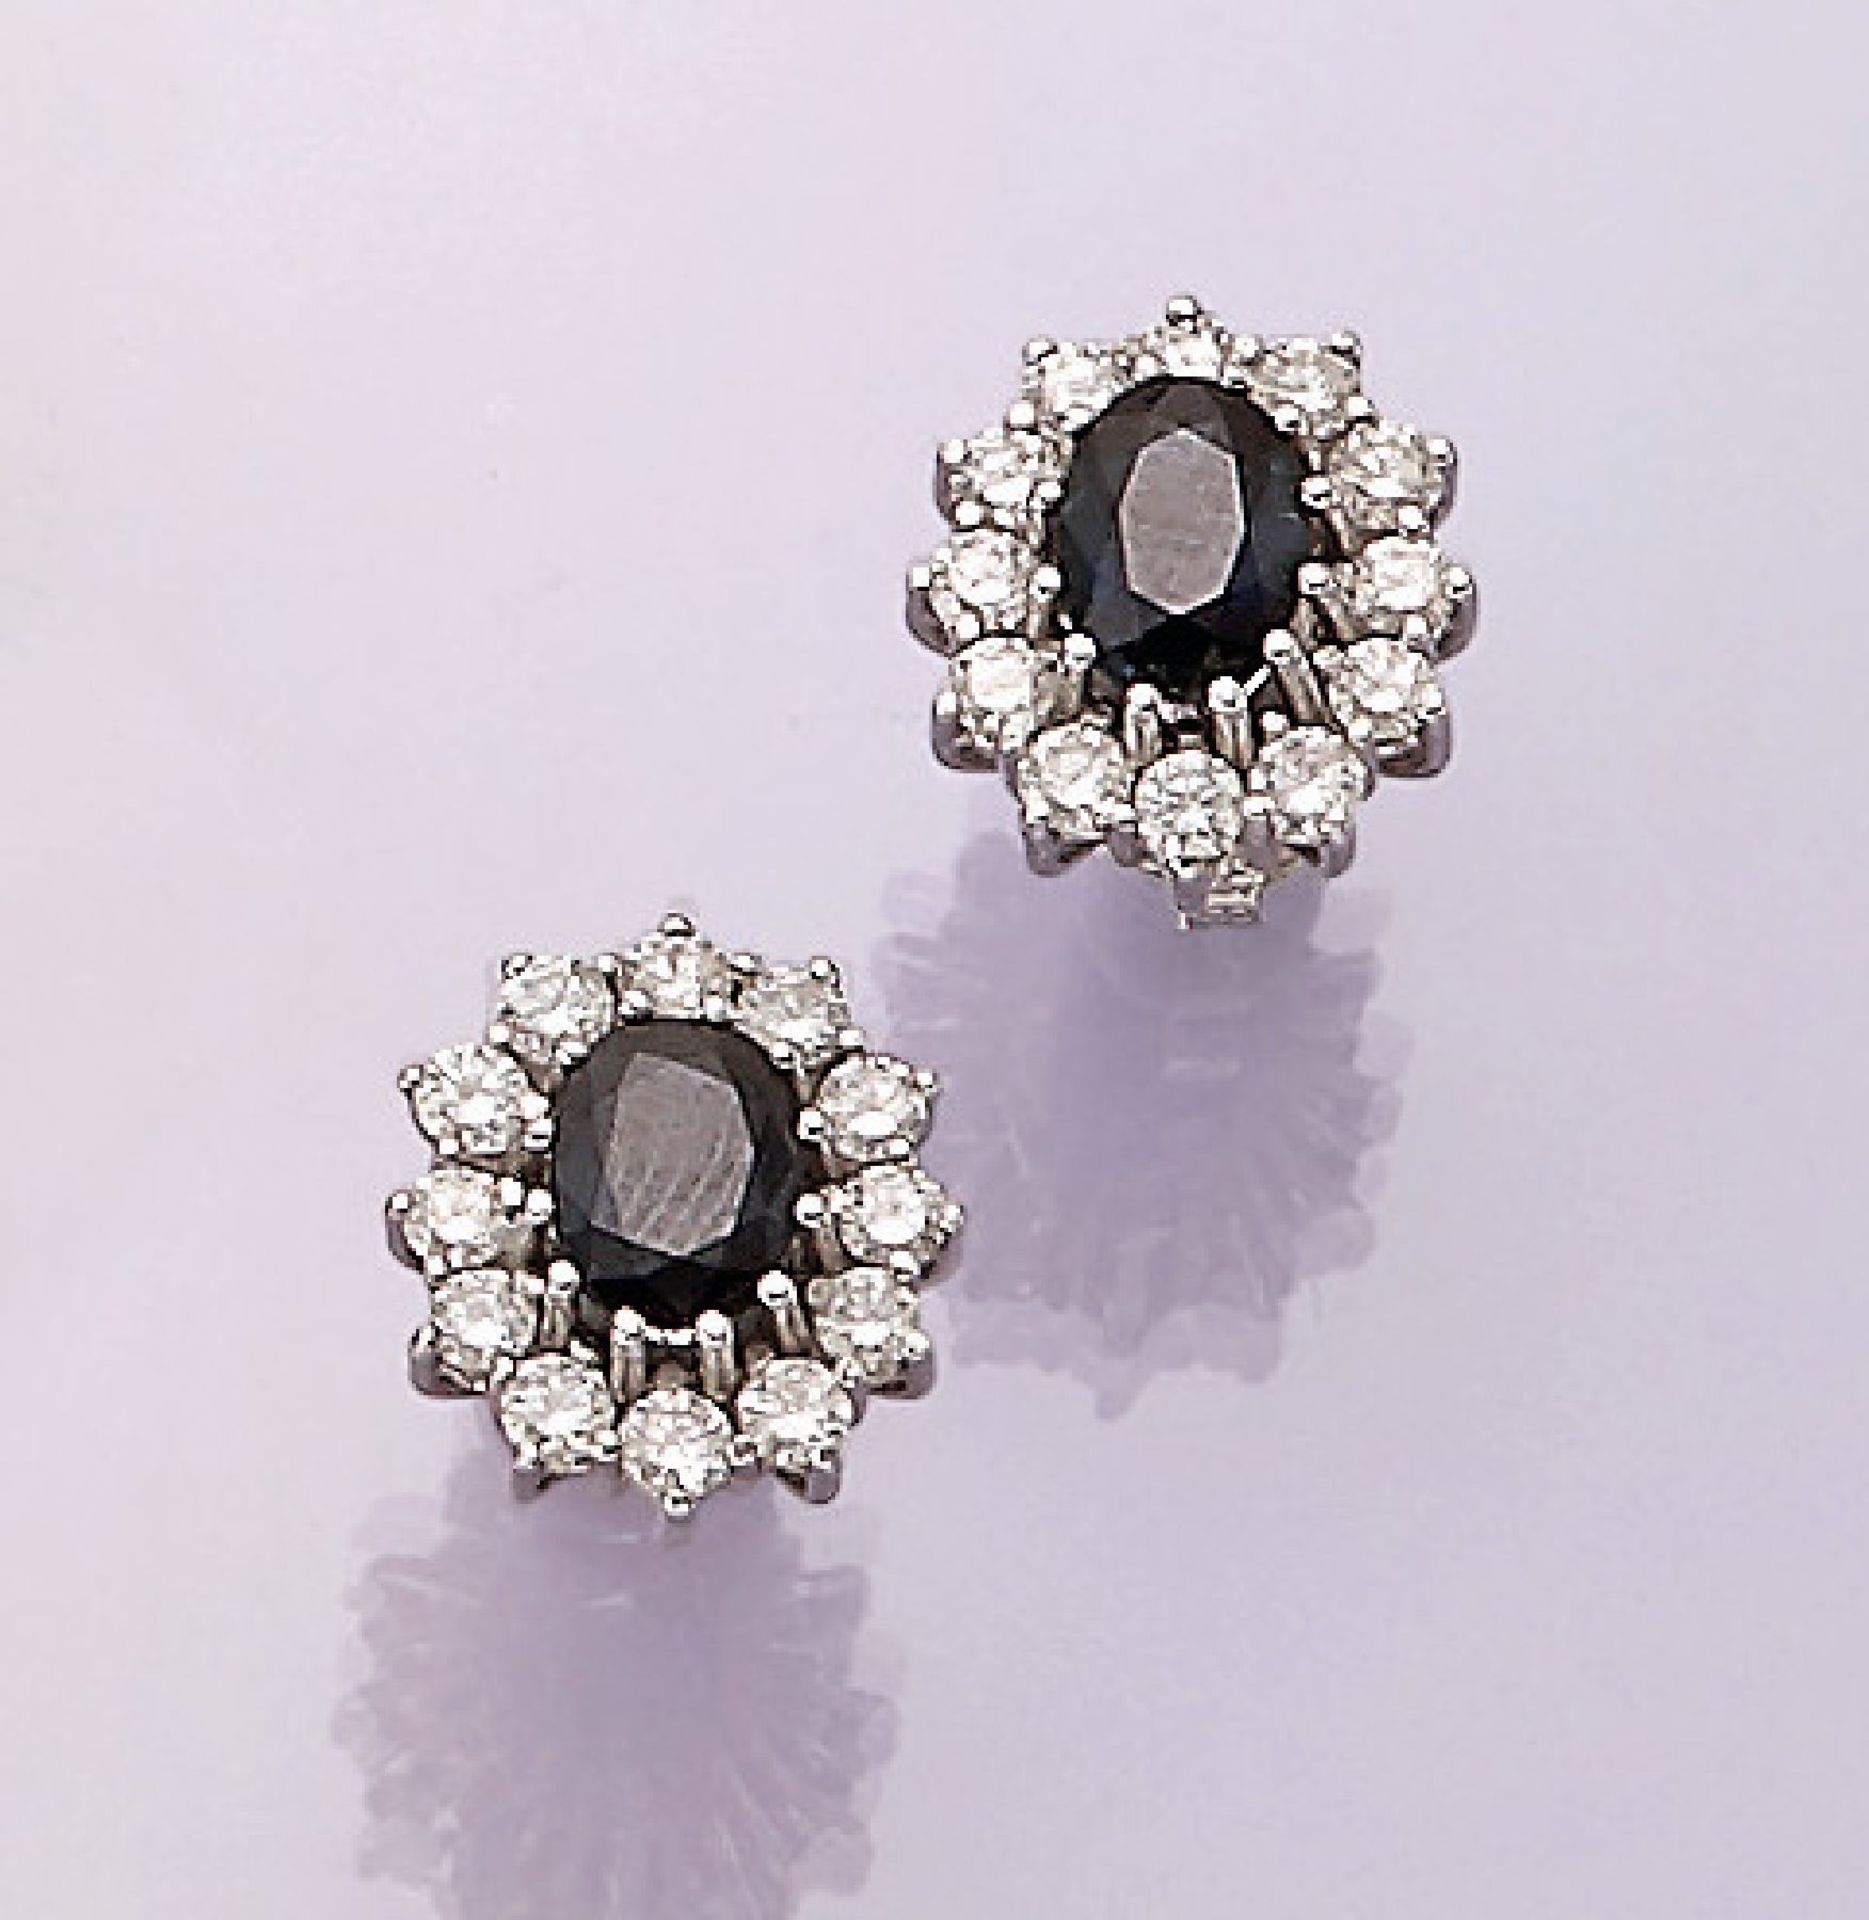 Los 31559 - Pair of 14 kt gold blossom earrings with sapphires and brilliants , WG 585/000, 2 oval bevelled